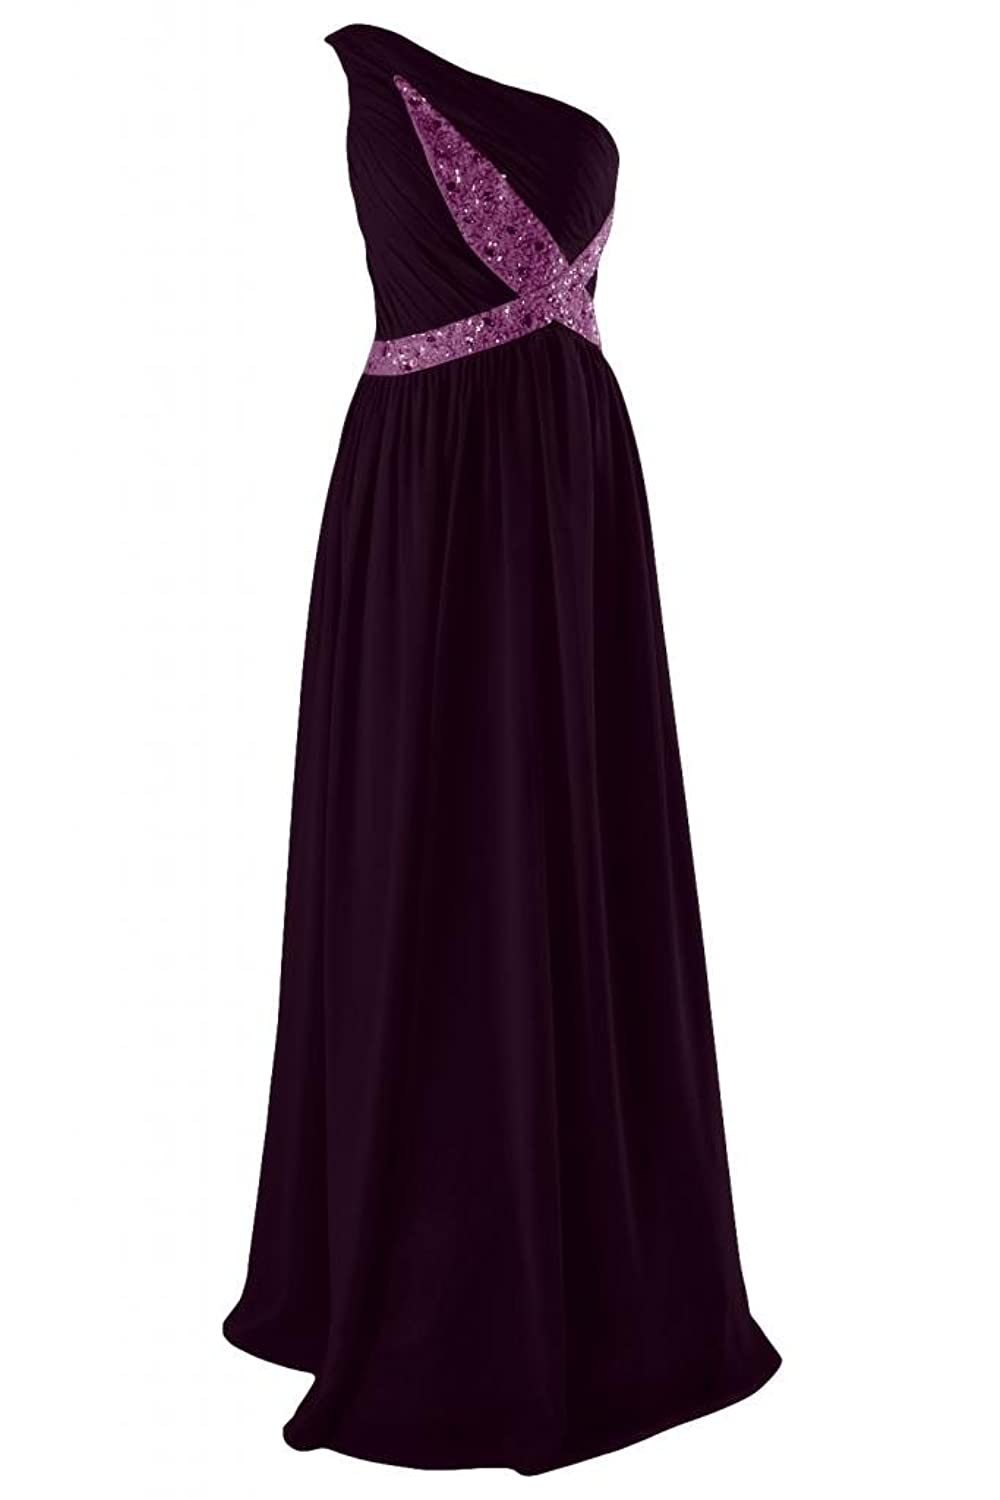 Sunvary Romantic One-shoulder Plus Size Party Dress Prom Pageant Gowns Maxi Evening Dresses